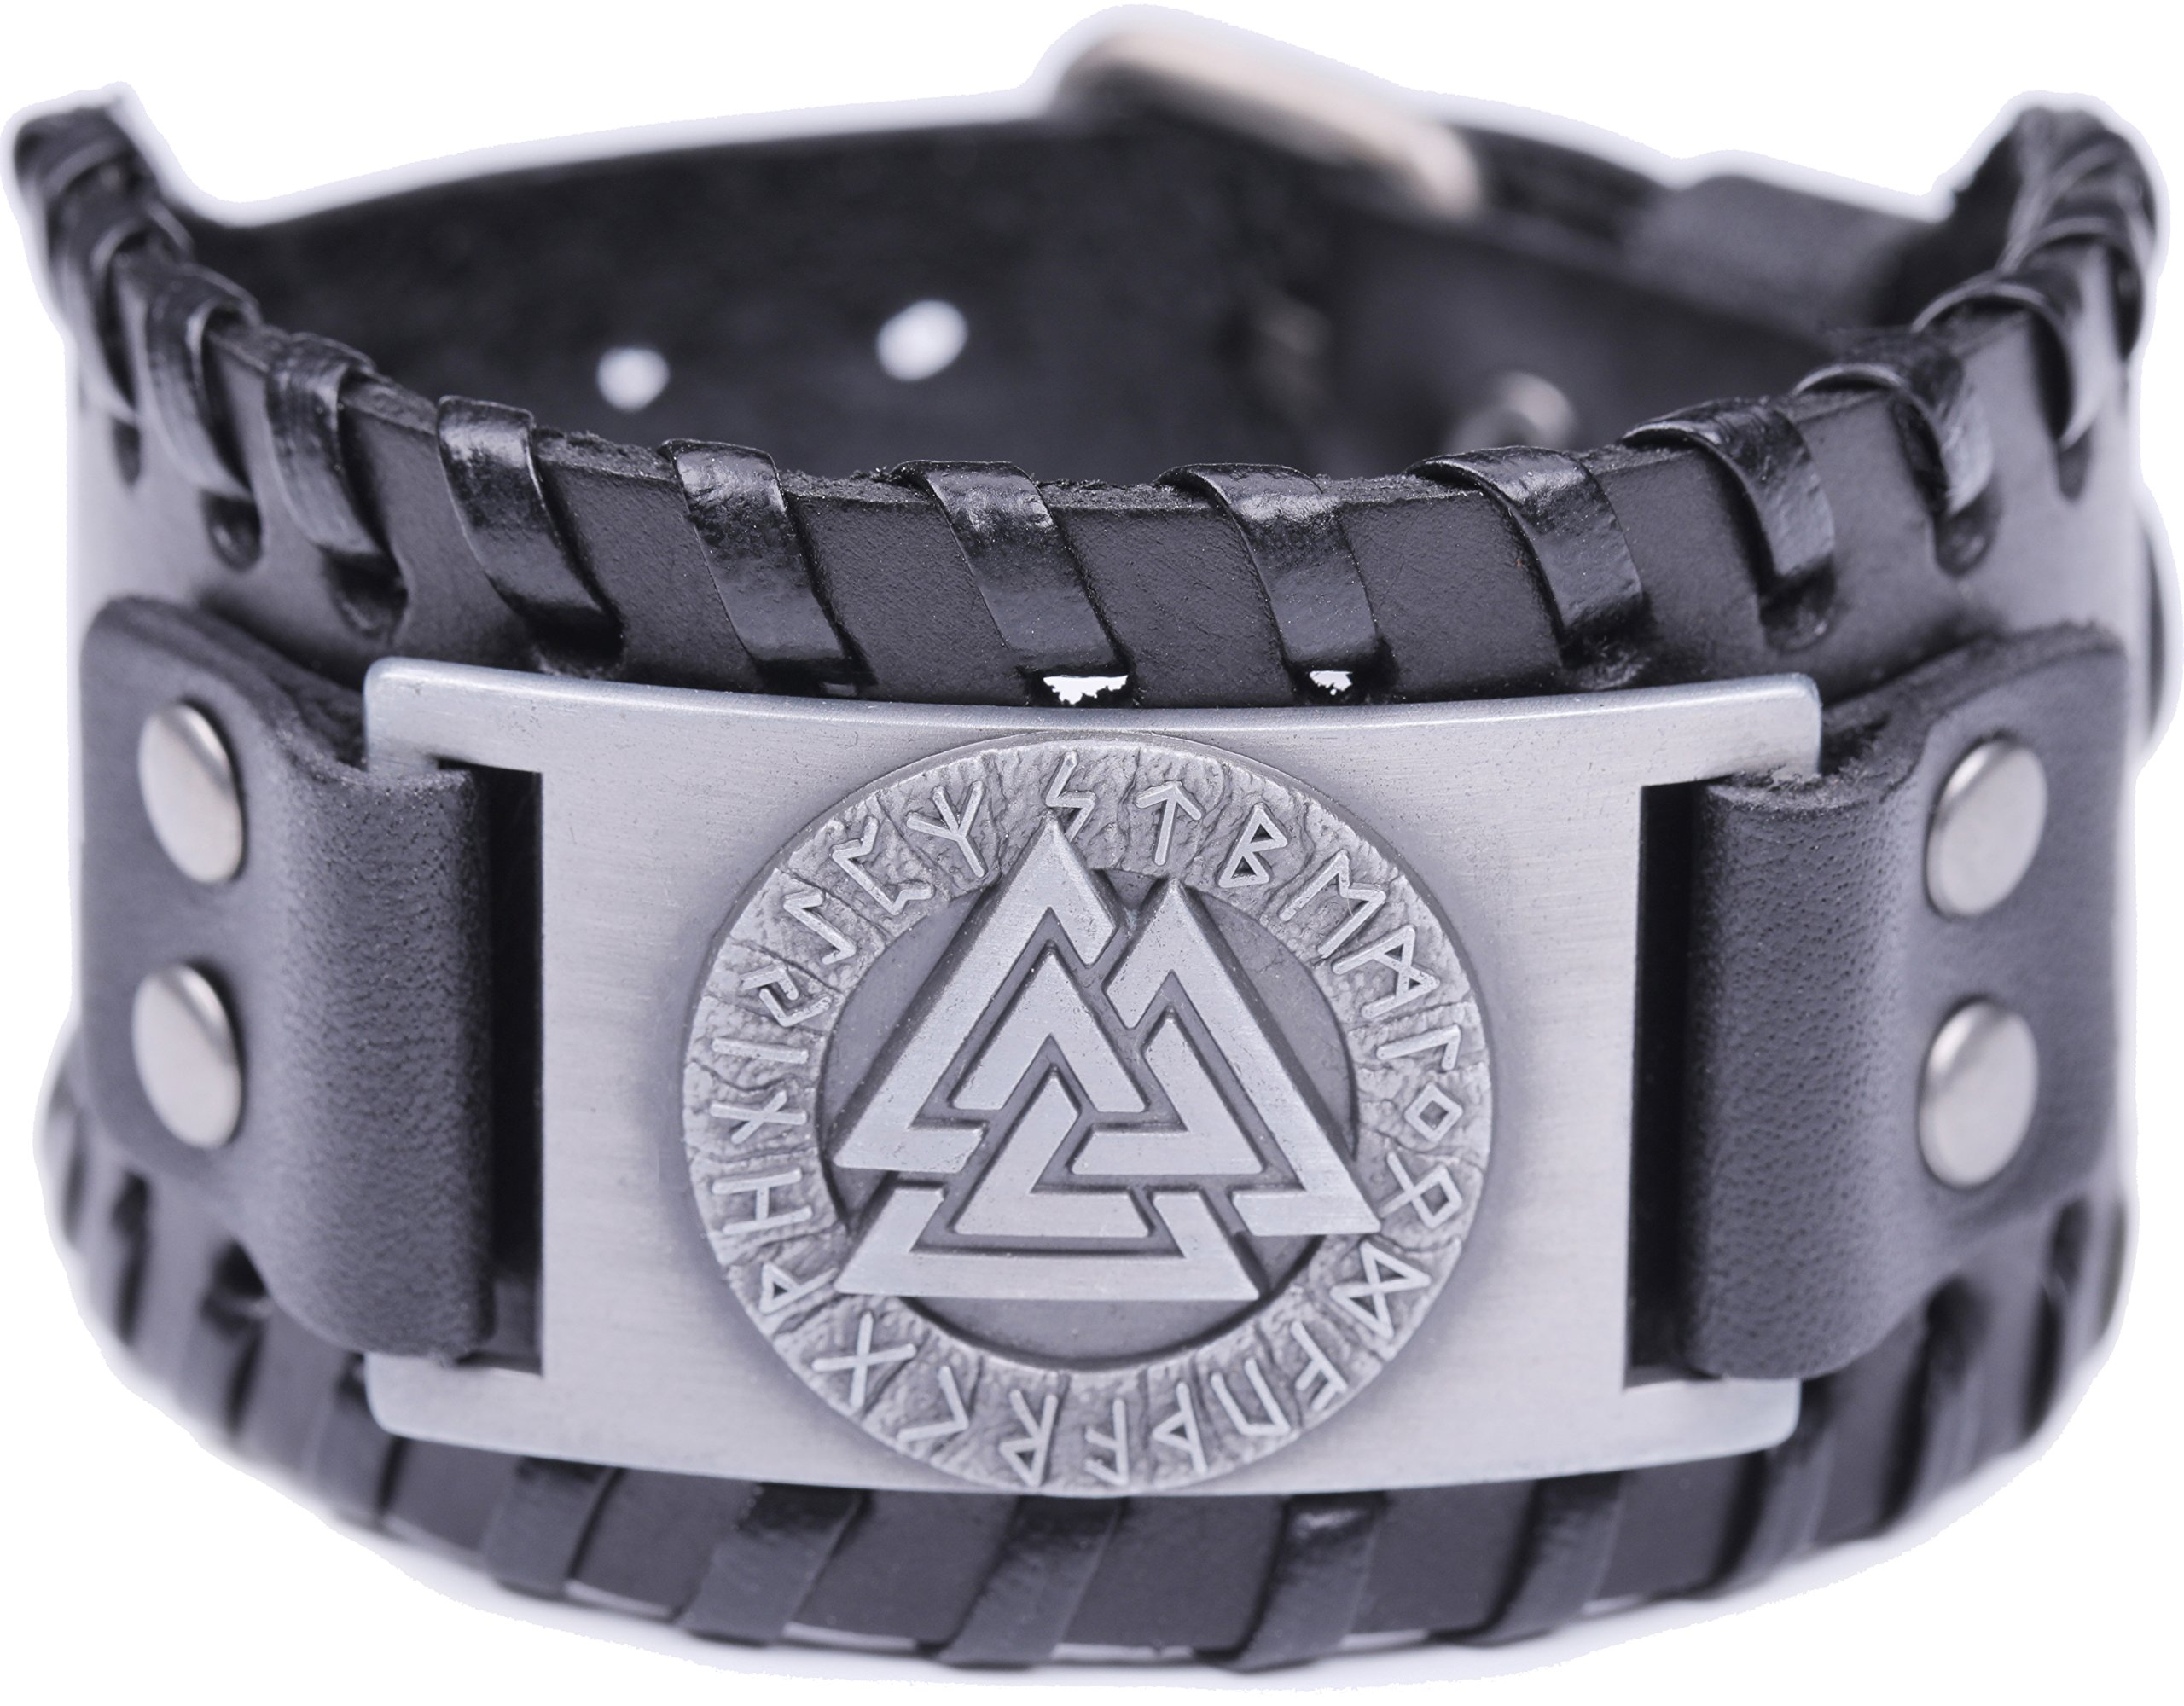 VASSAGO Vintage Wicca Odin's Symbol of Norse Viking Warriors Valknut Viking Runes Charm Cuff New-style Belt Buckle Bracelet (Black Leather, Antique Silver)